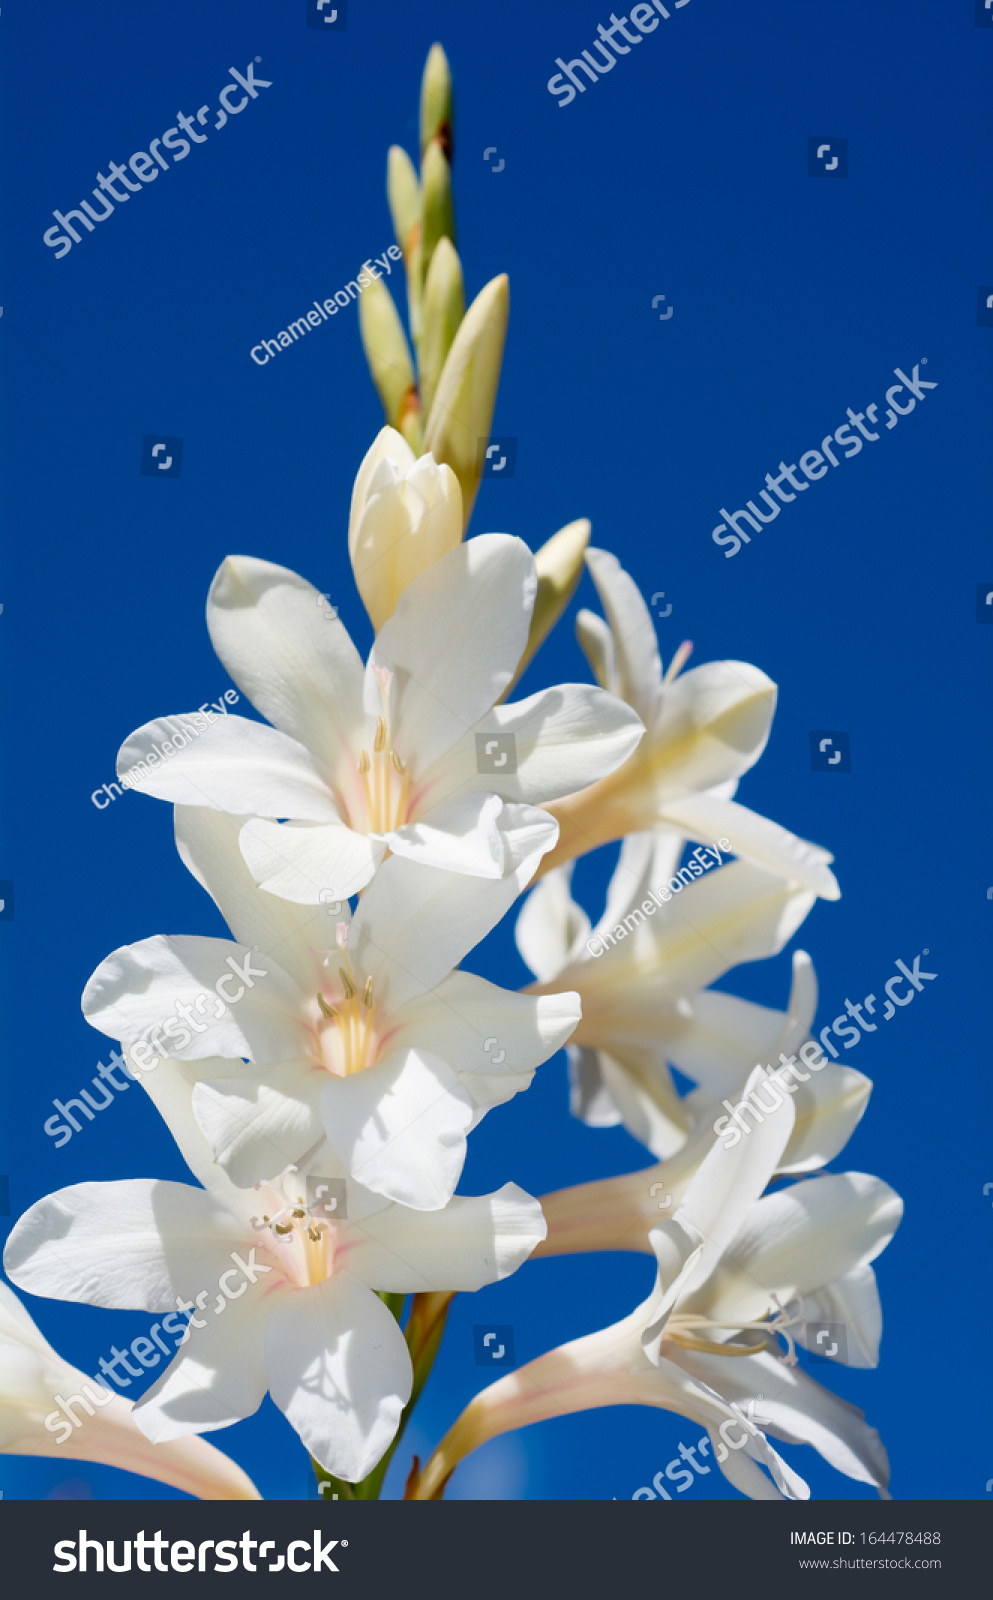 White Artificial Lilly Flower On The Blue Background Ez Canvas